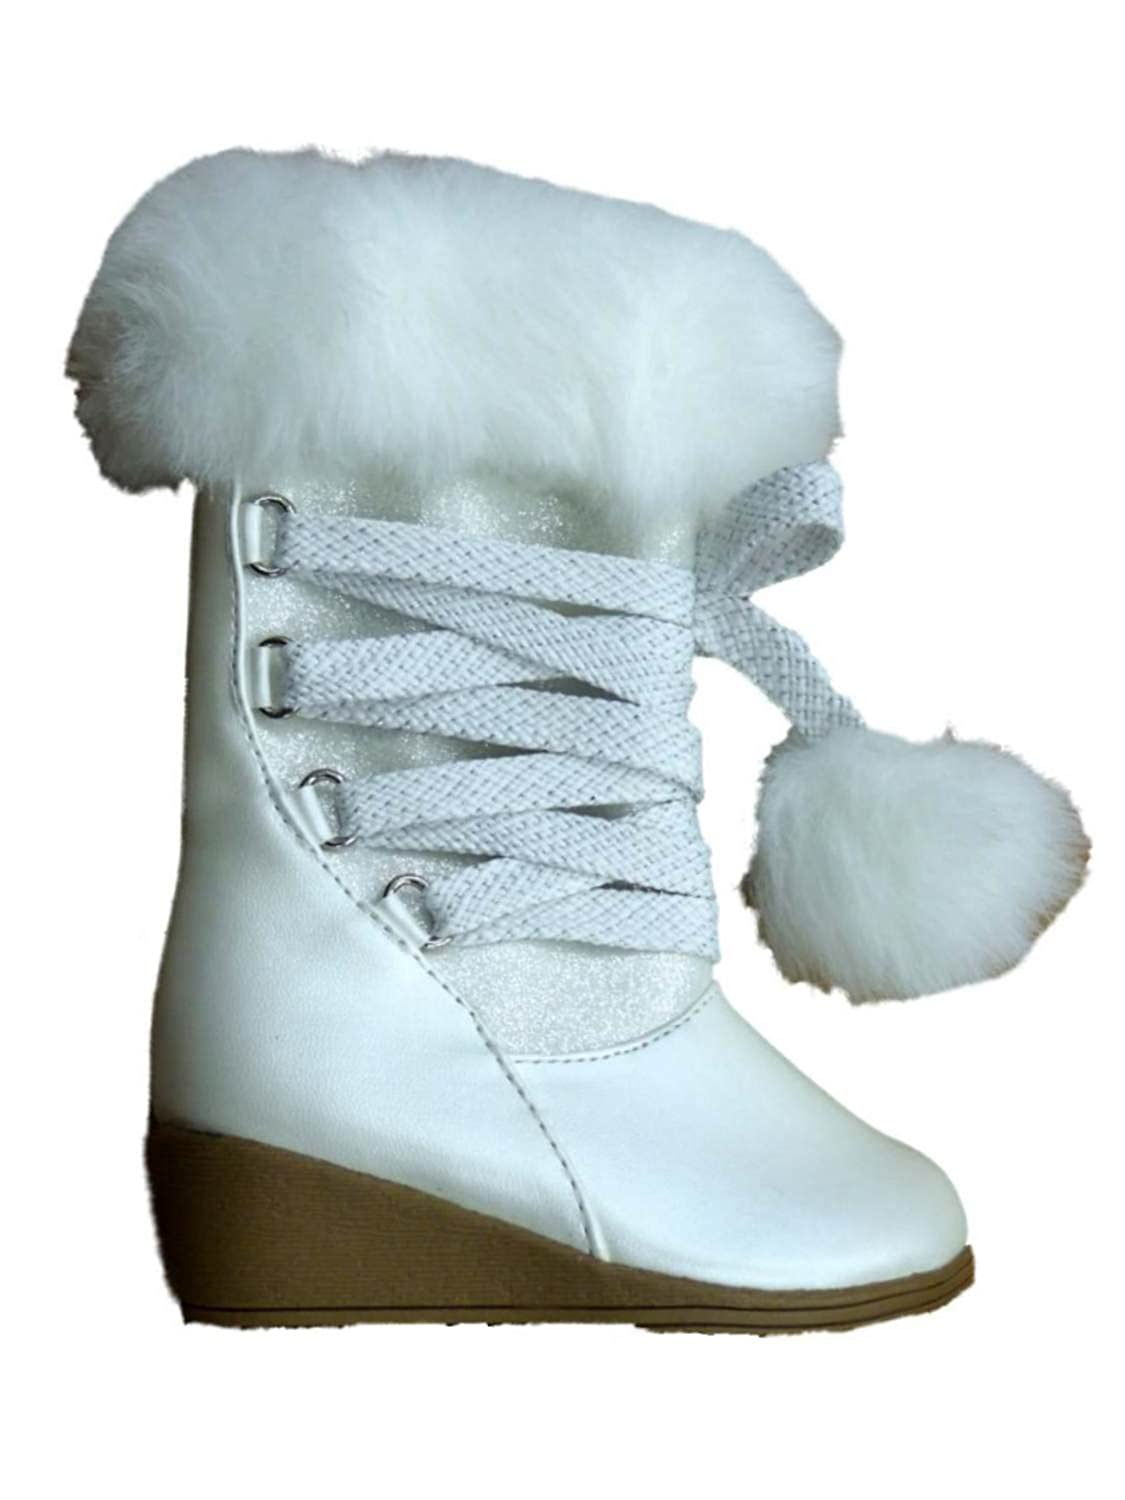 Canyon River Blues Toddler Girls White Fashion Boots with Faux Fur Trim